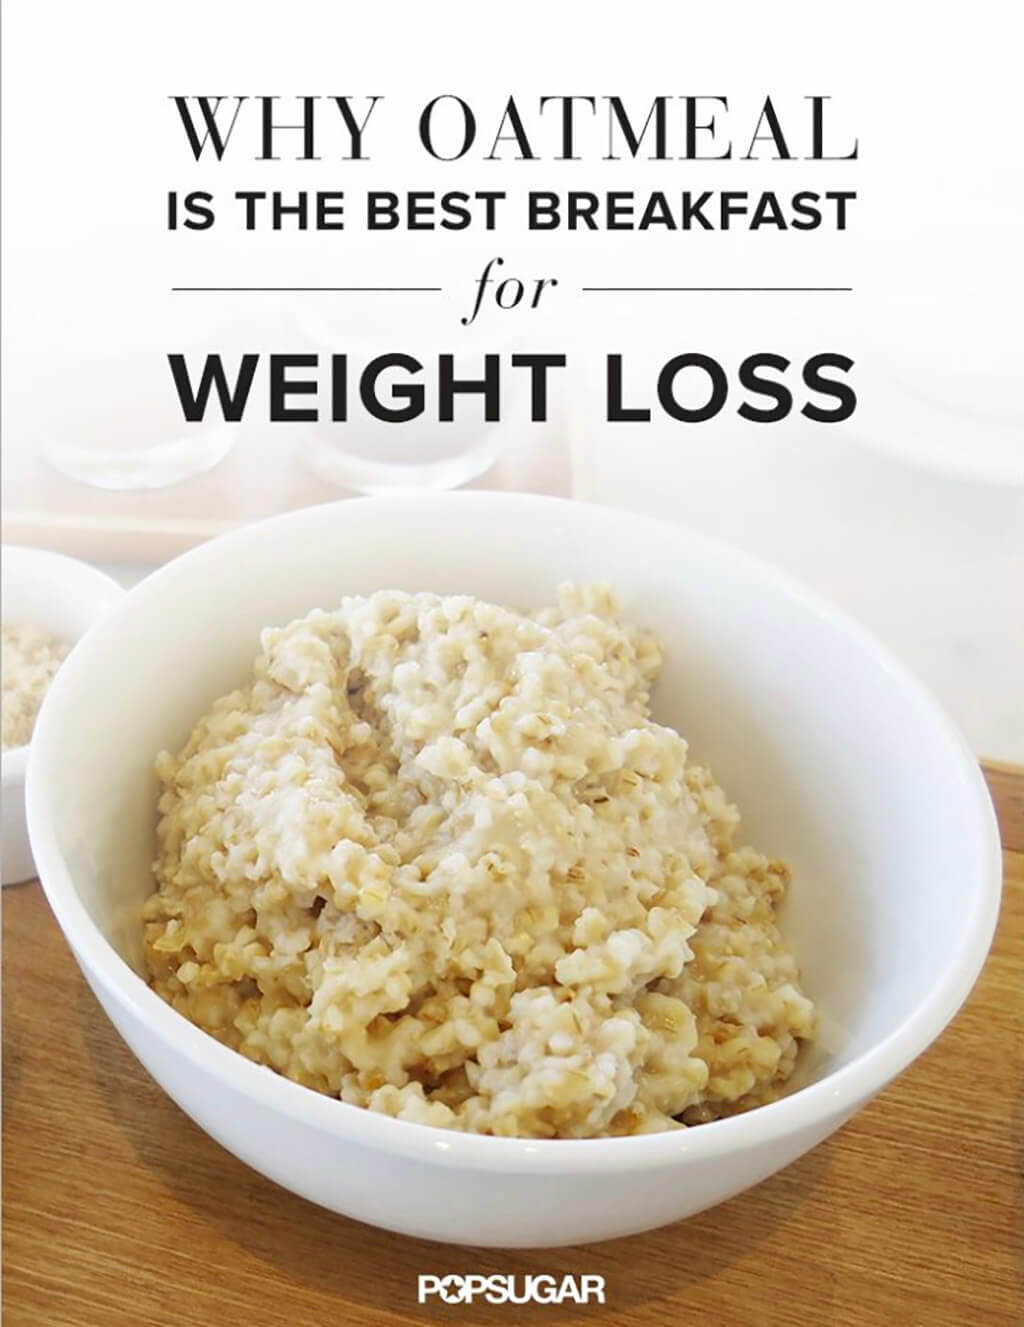 is oatmeal good for weight loss